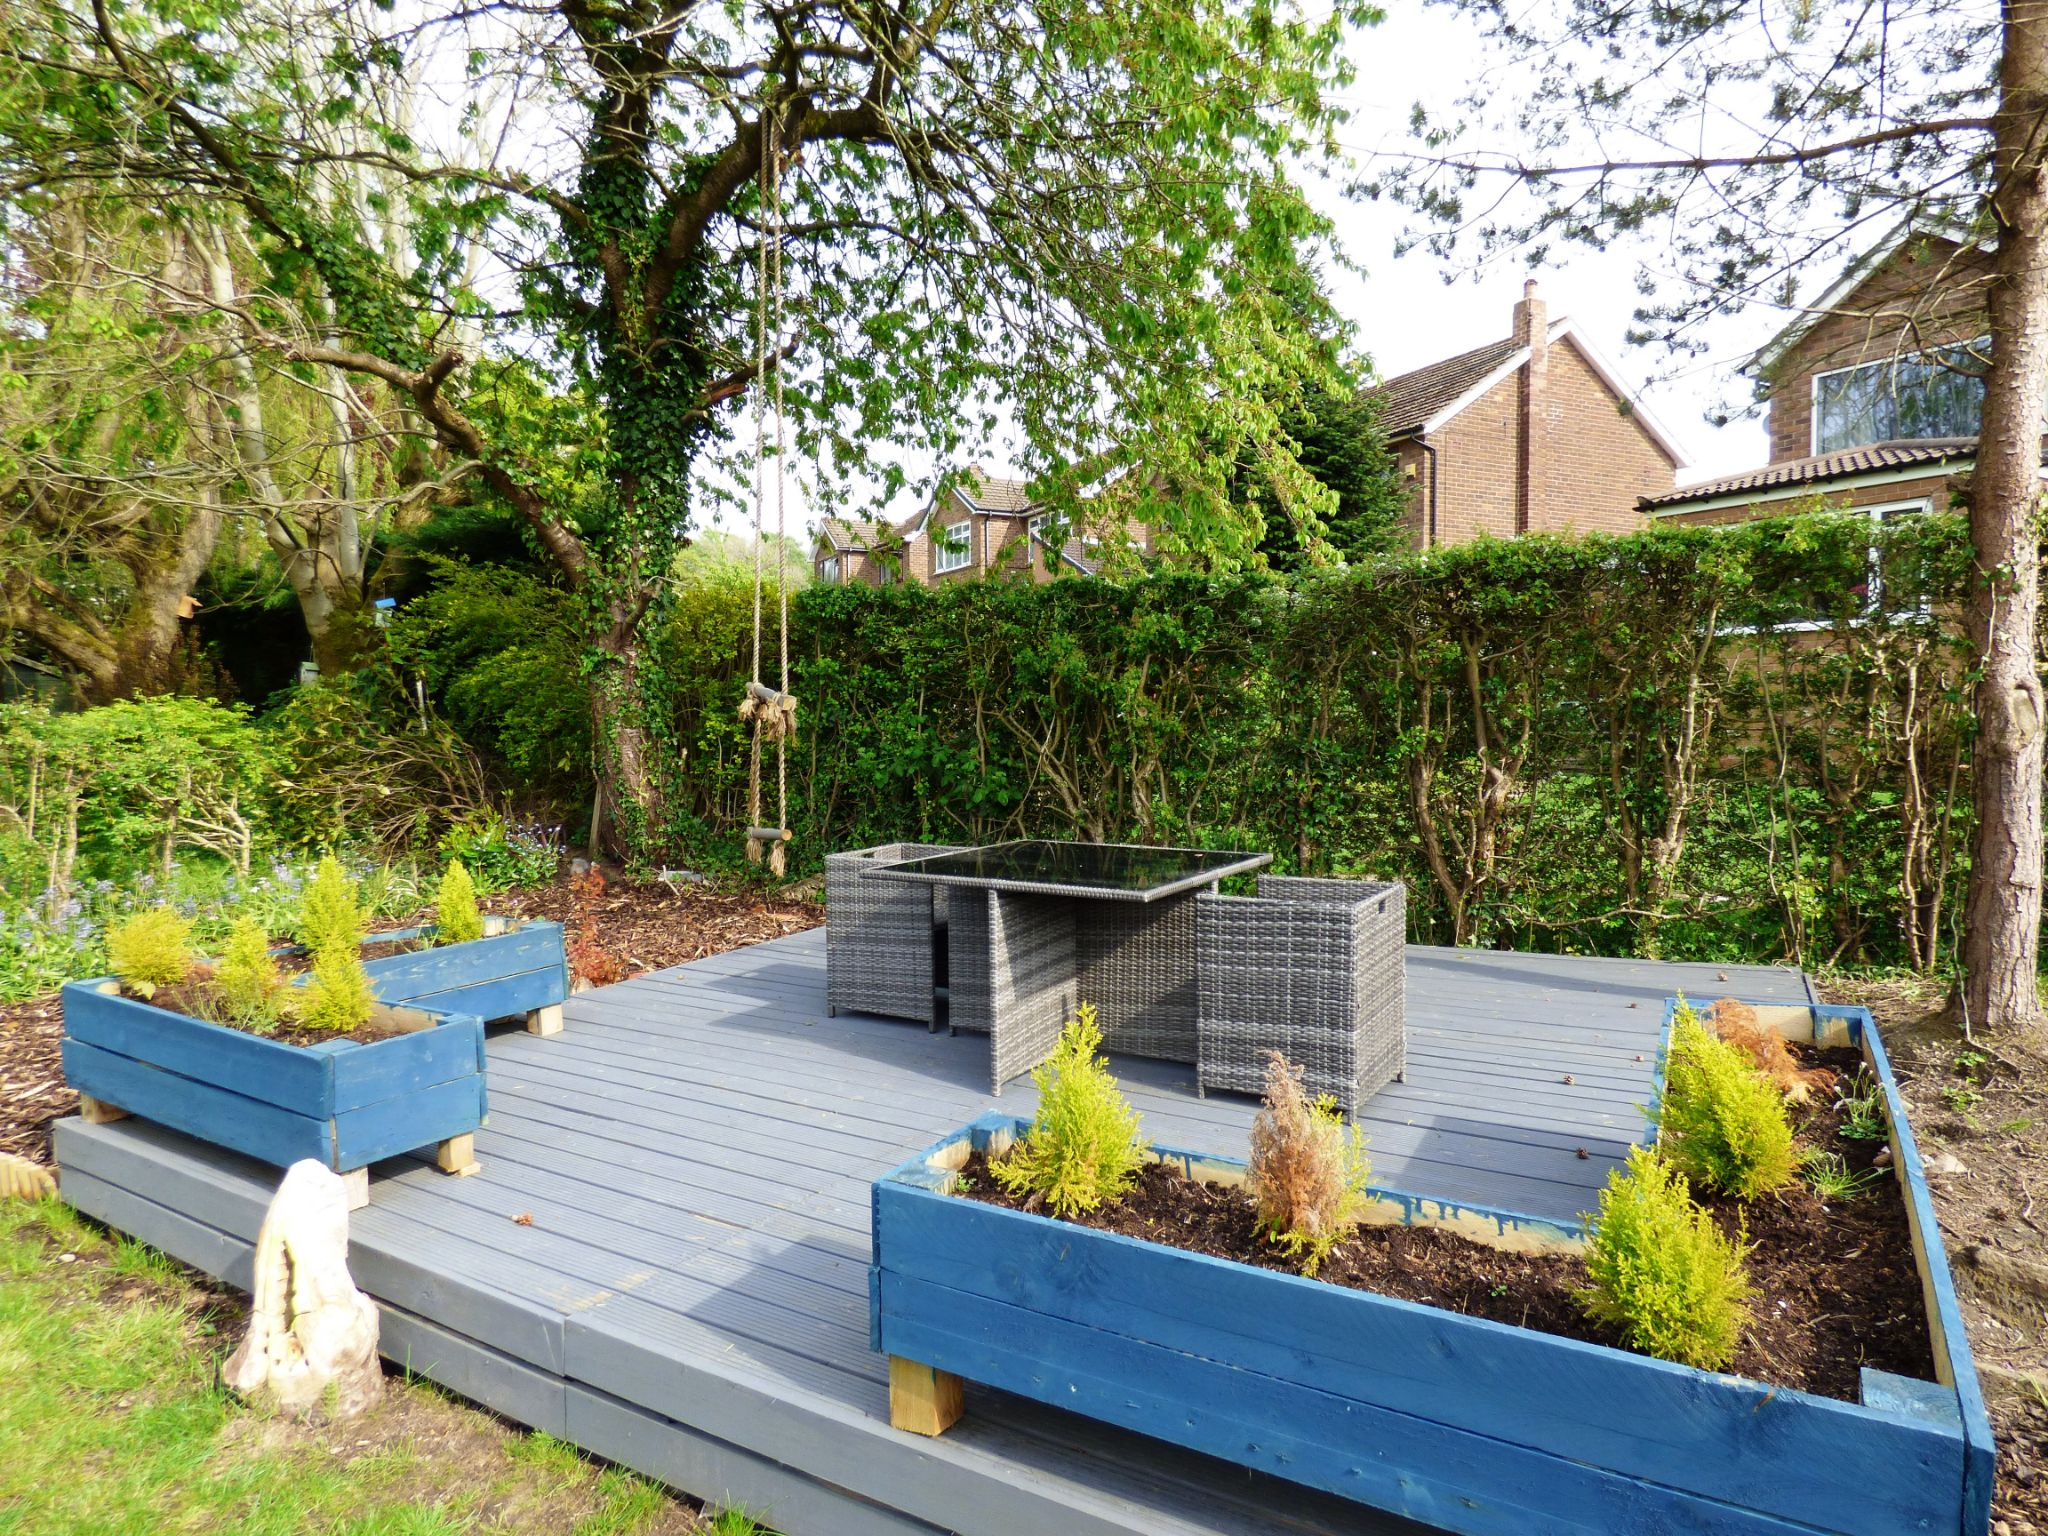 3 Bedroom Semi-detached House For Sale - Decked Area